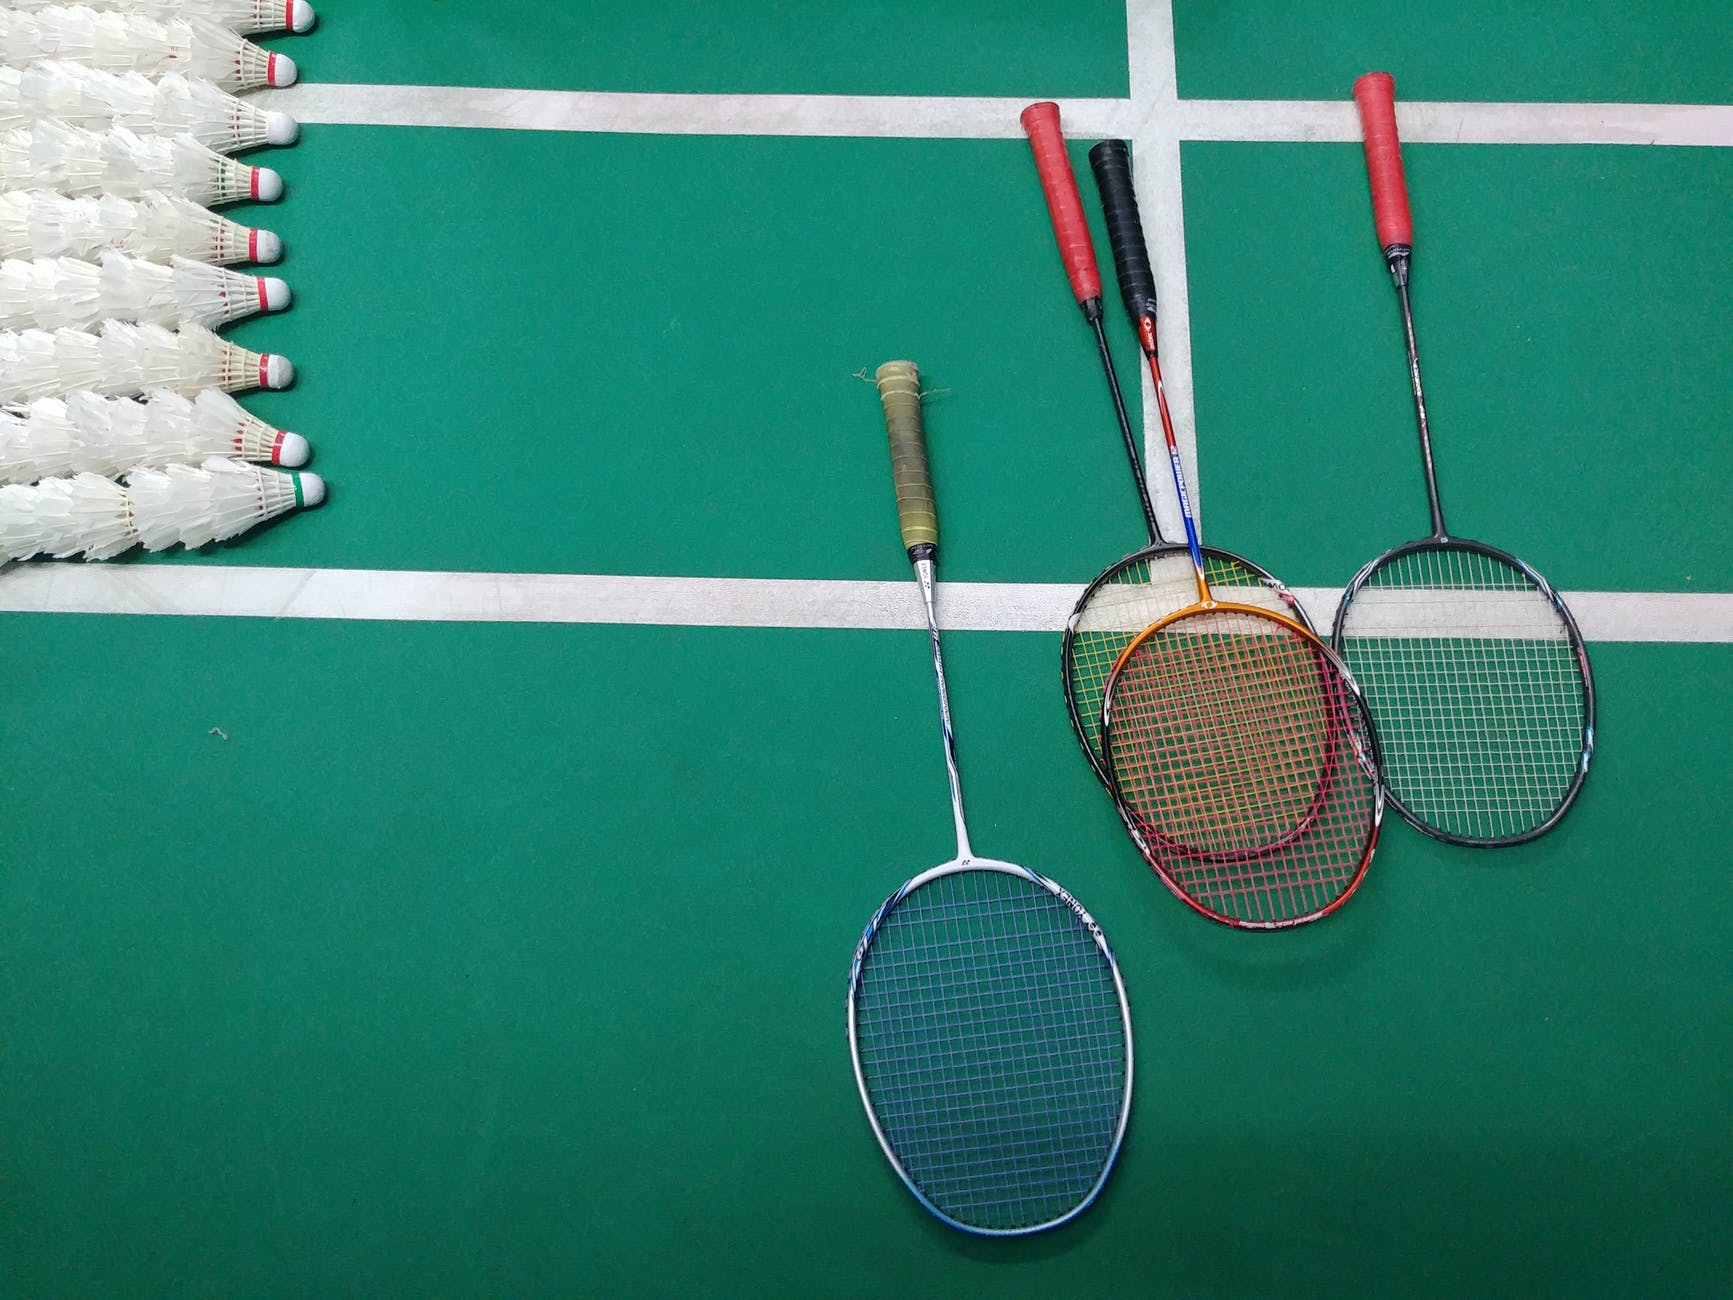 green and white court with badminton rackets